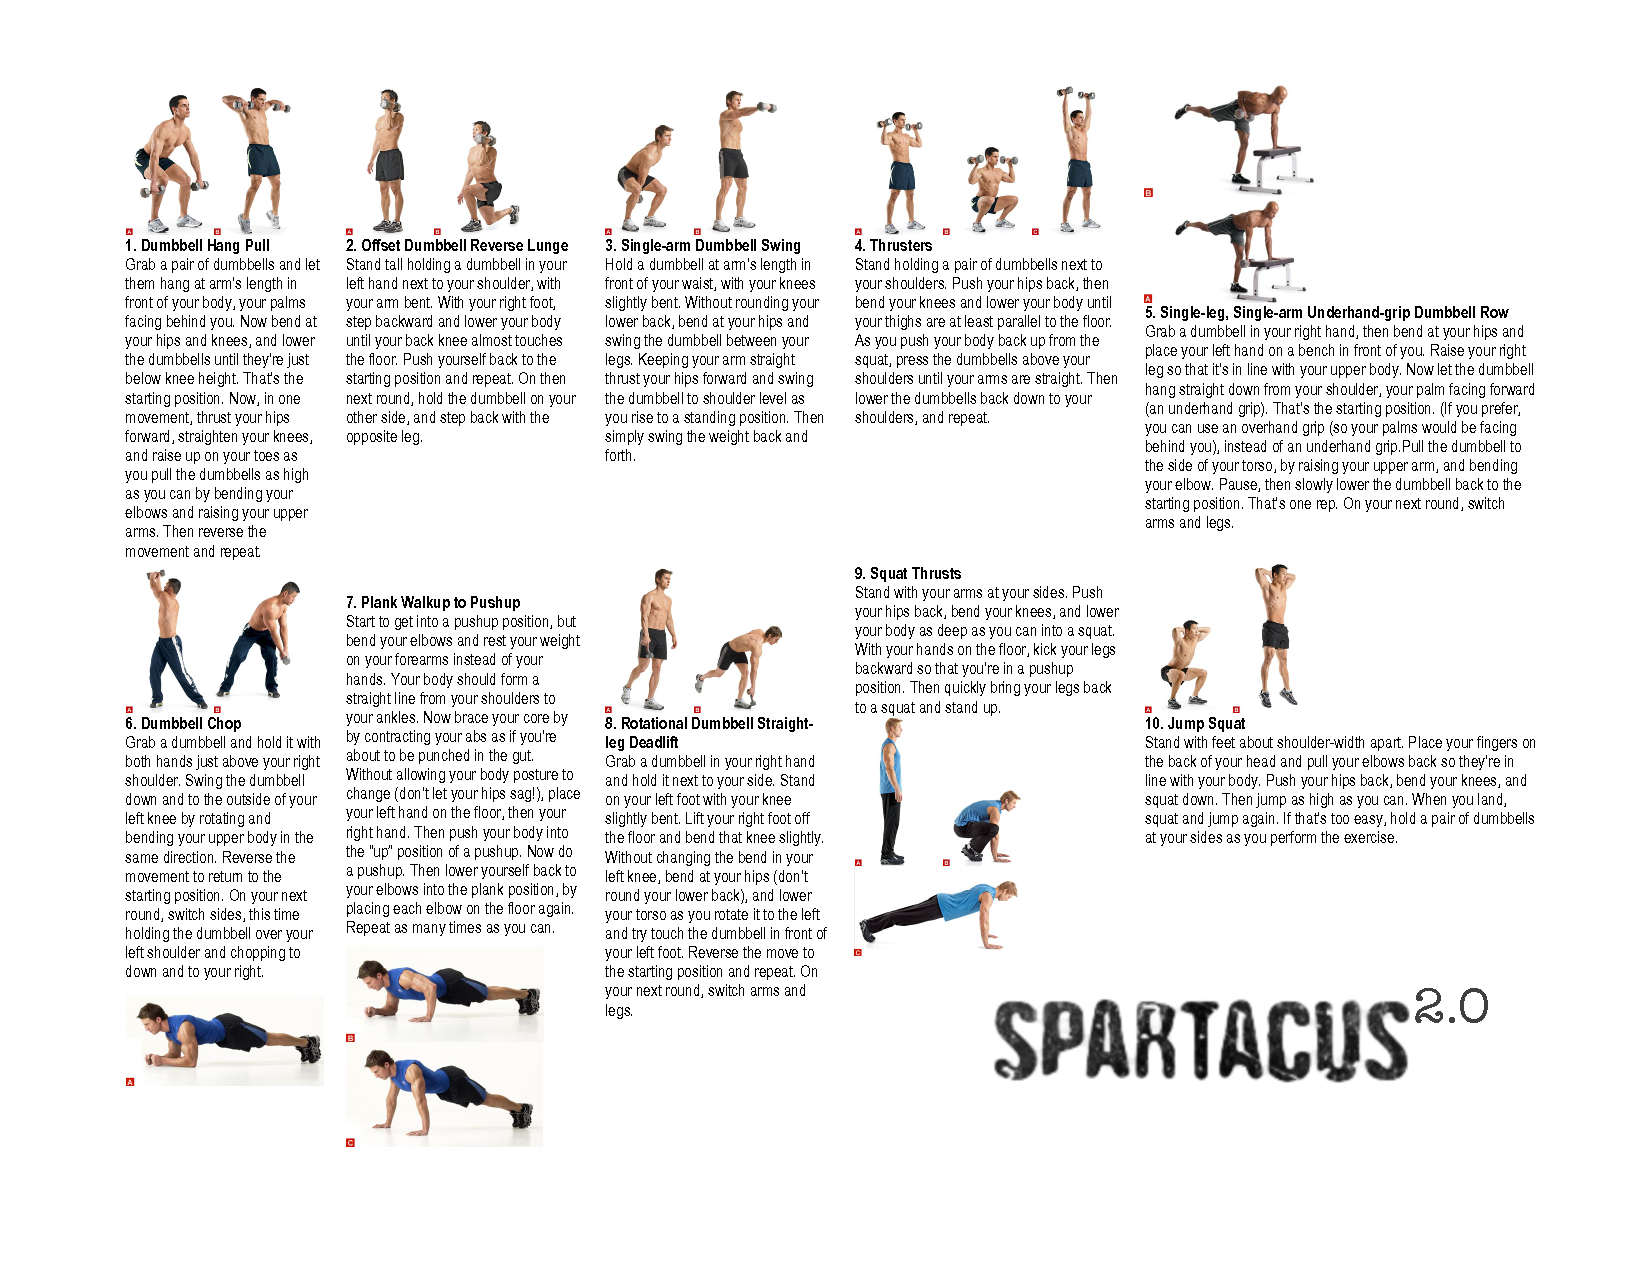 spartacus 2 workout